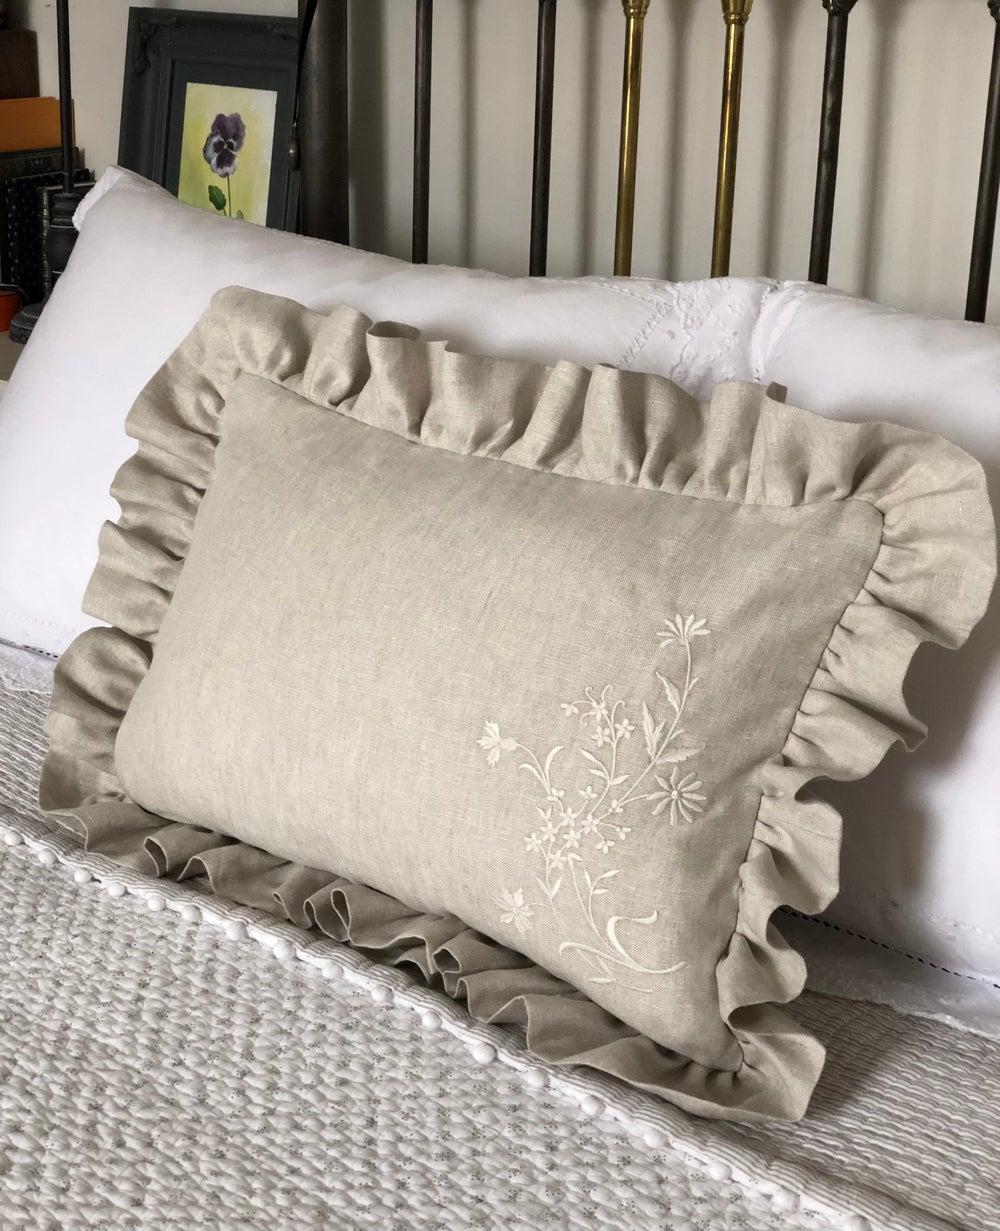 Image of Embroidered corn flowers on Frill linen Cushion